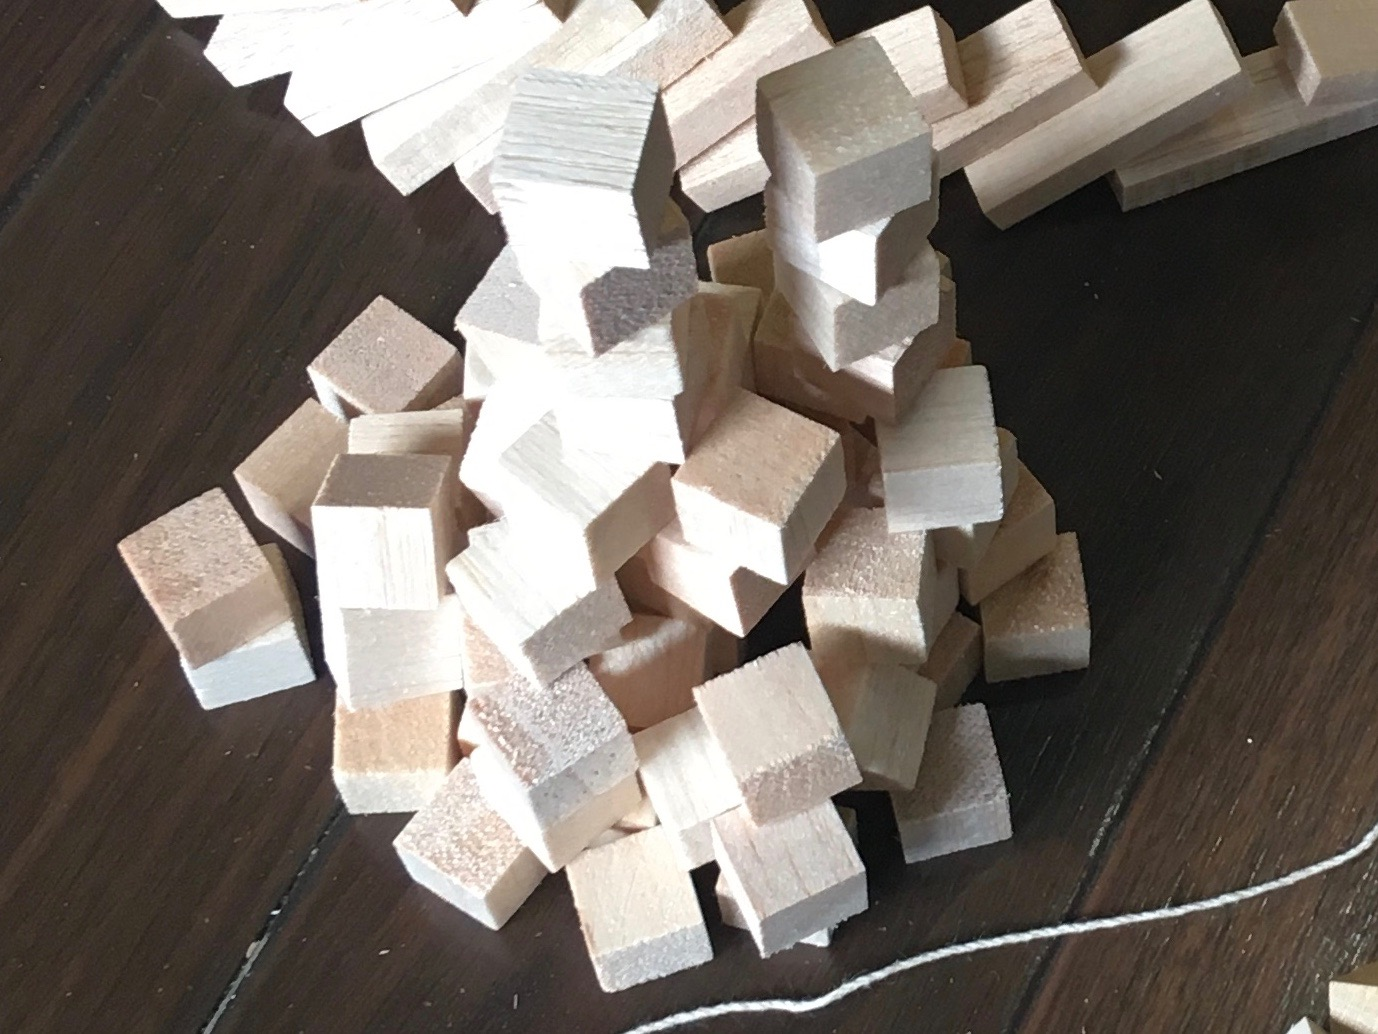 - This pile of wood blocks became the starting point of the first